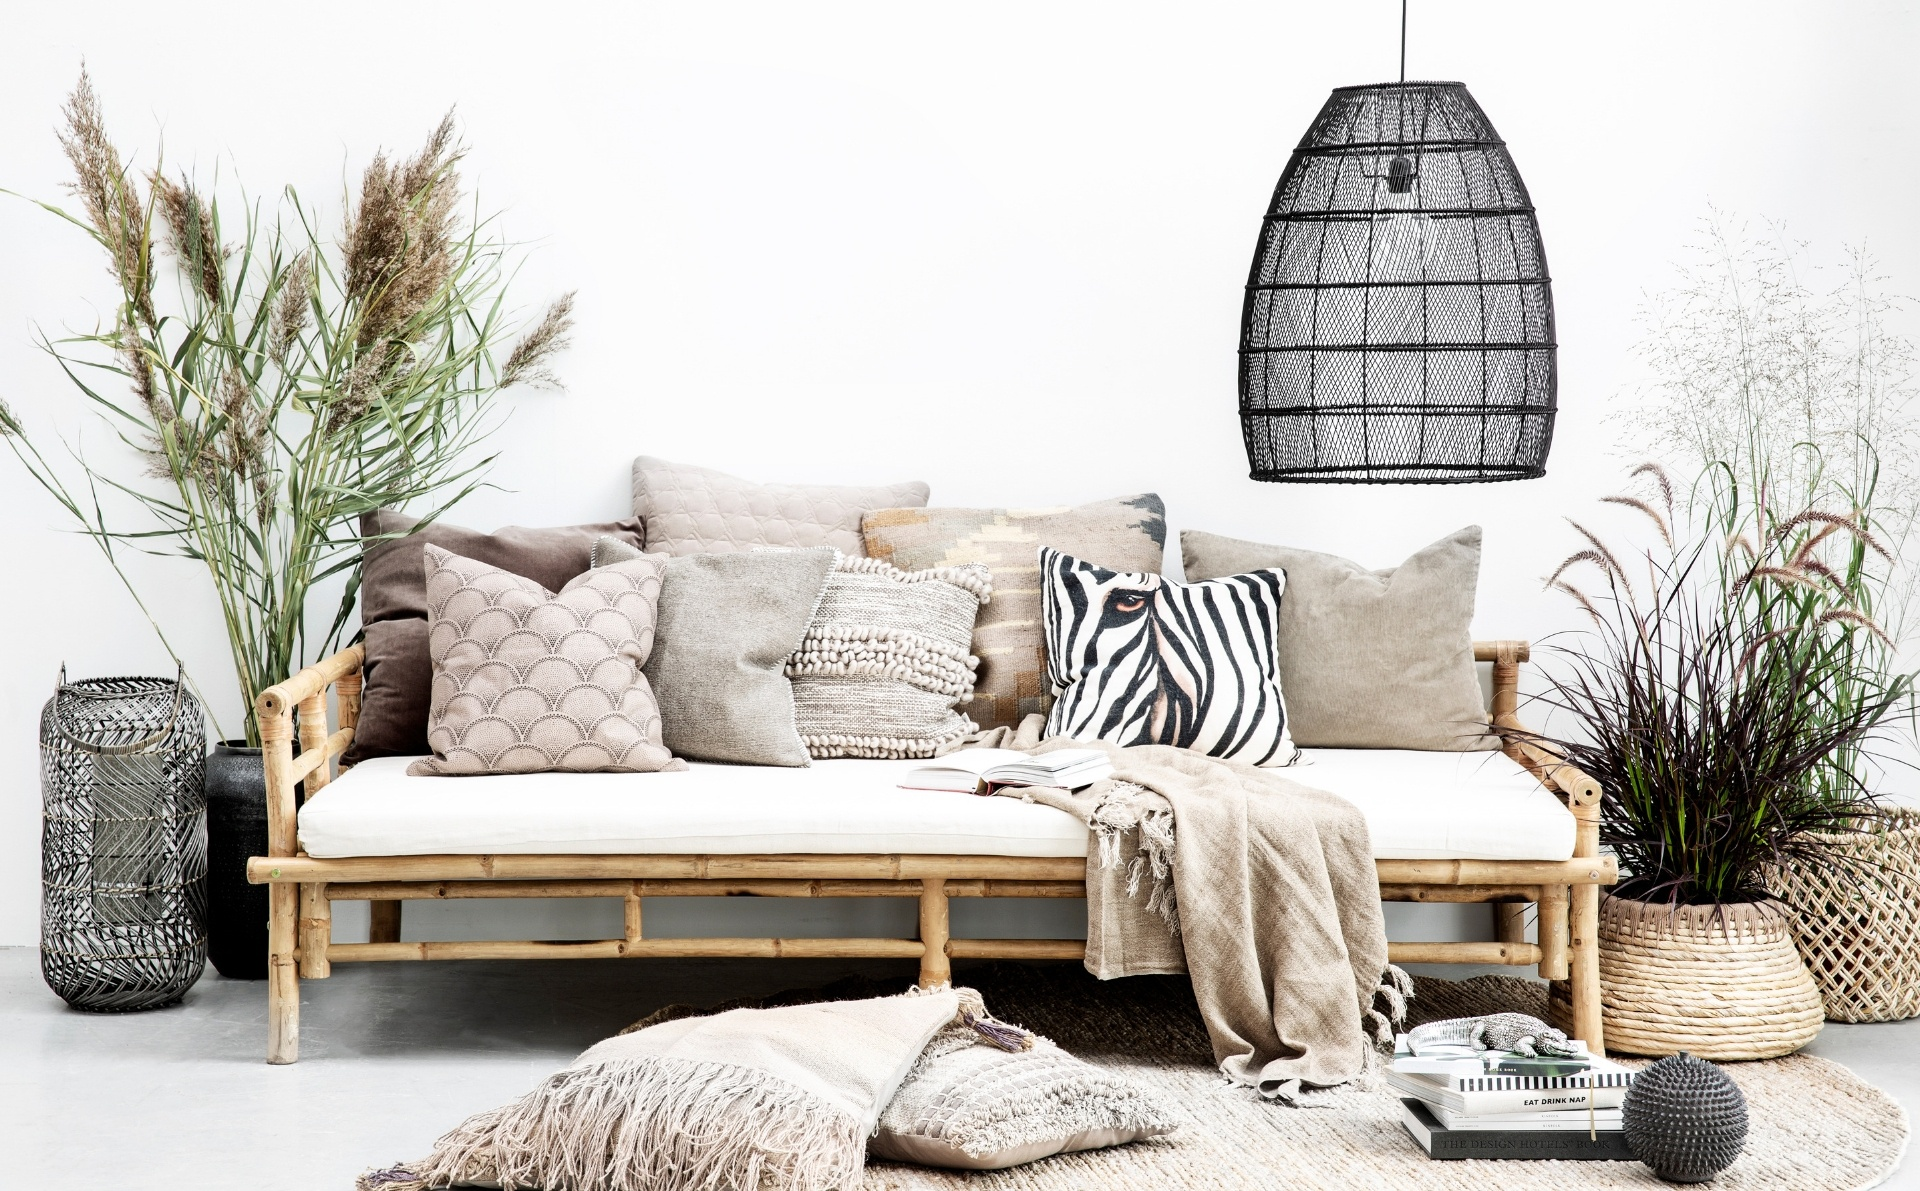 Lene Bjerre bamboo daybed with grey and brown coloured cushions